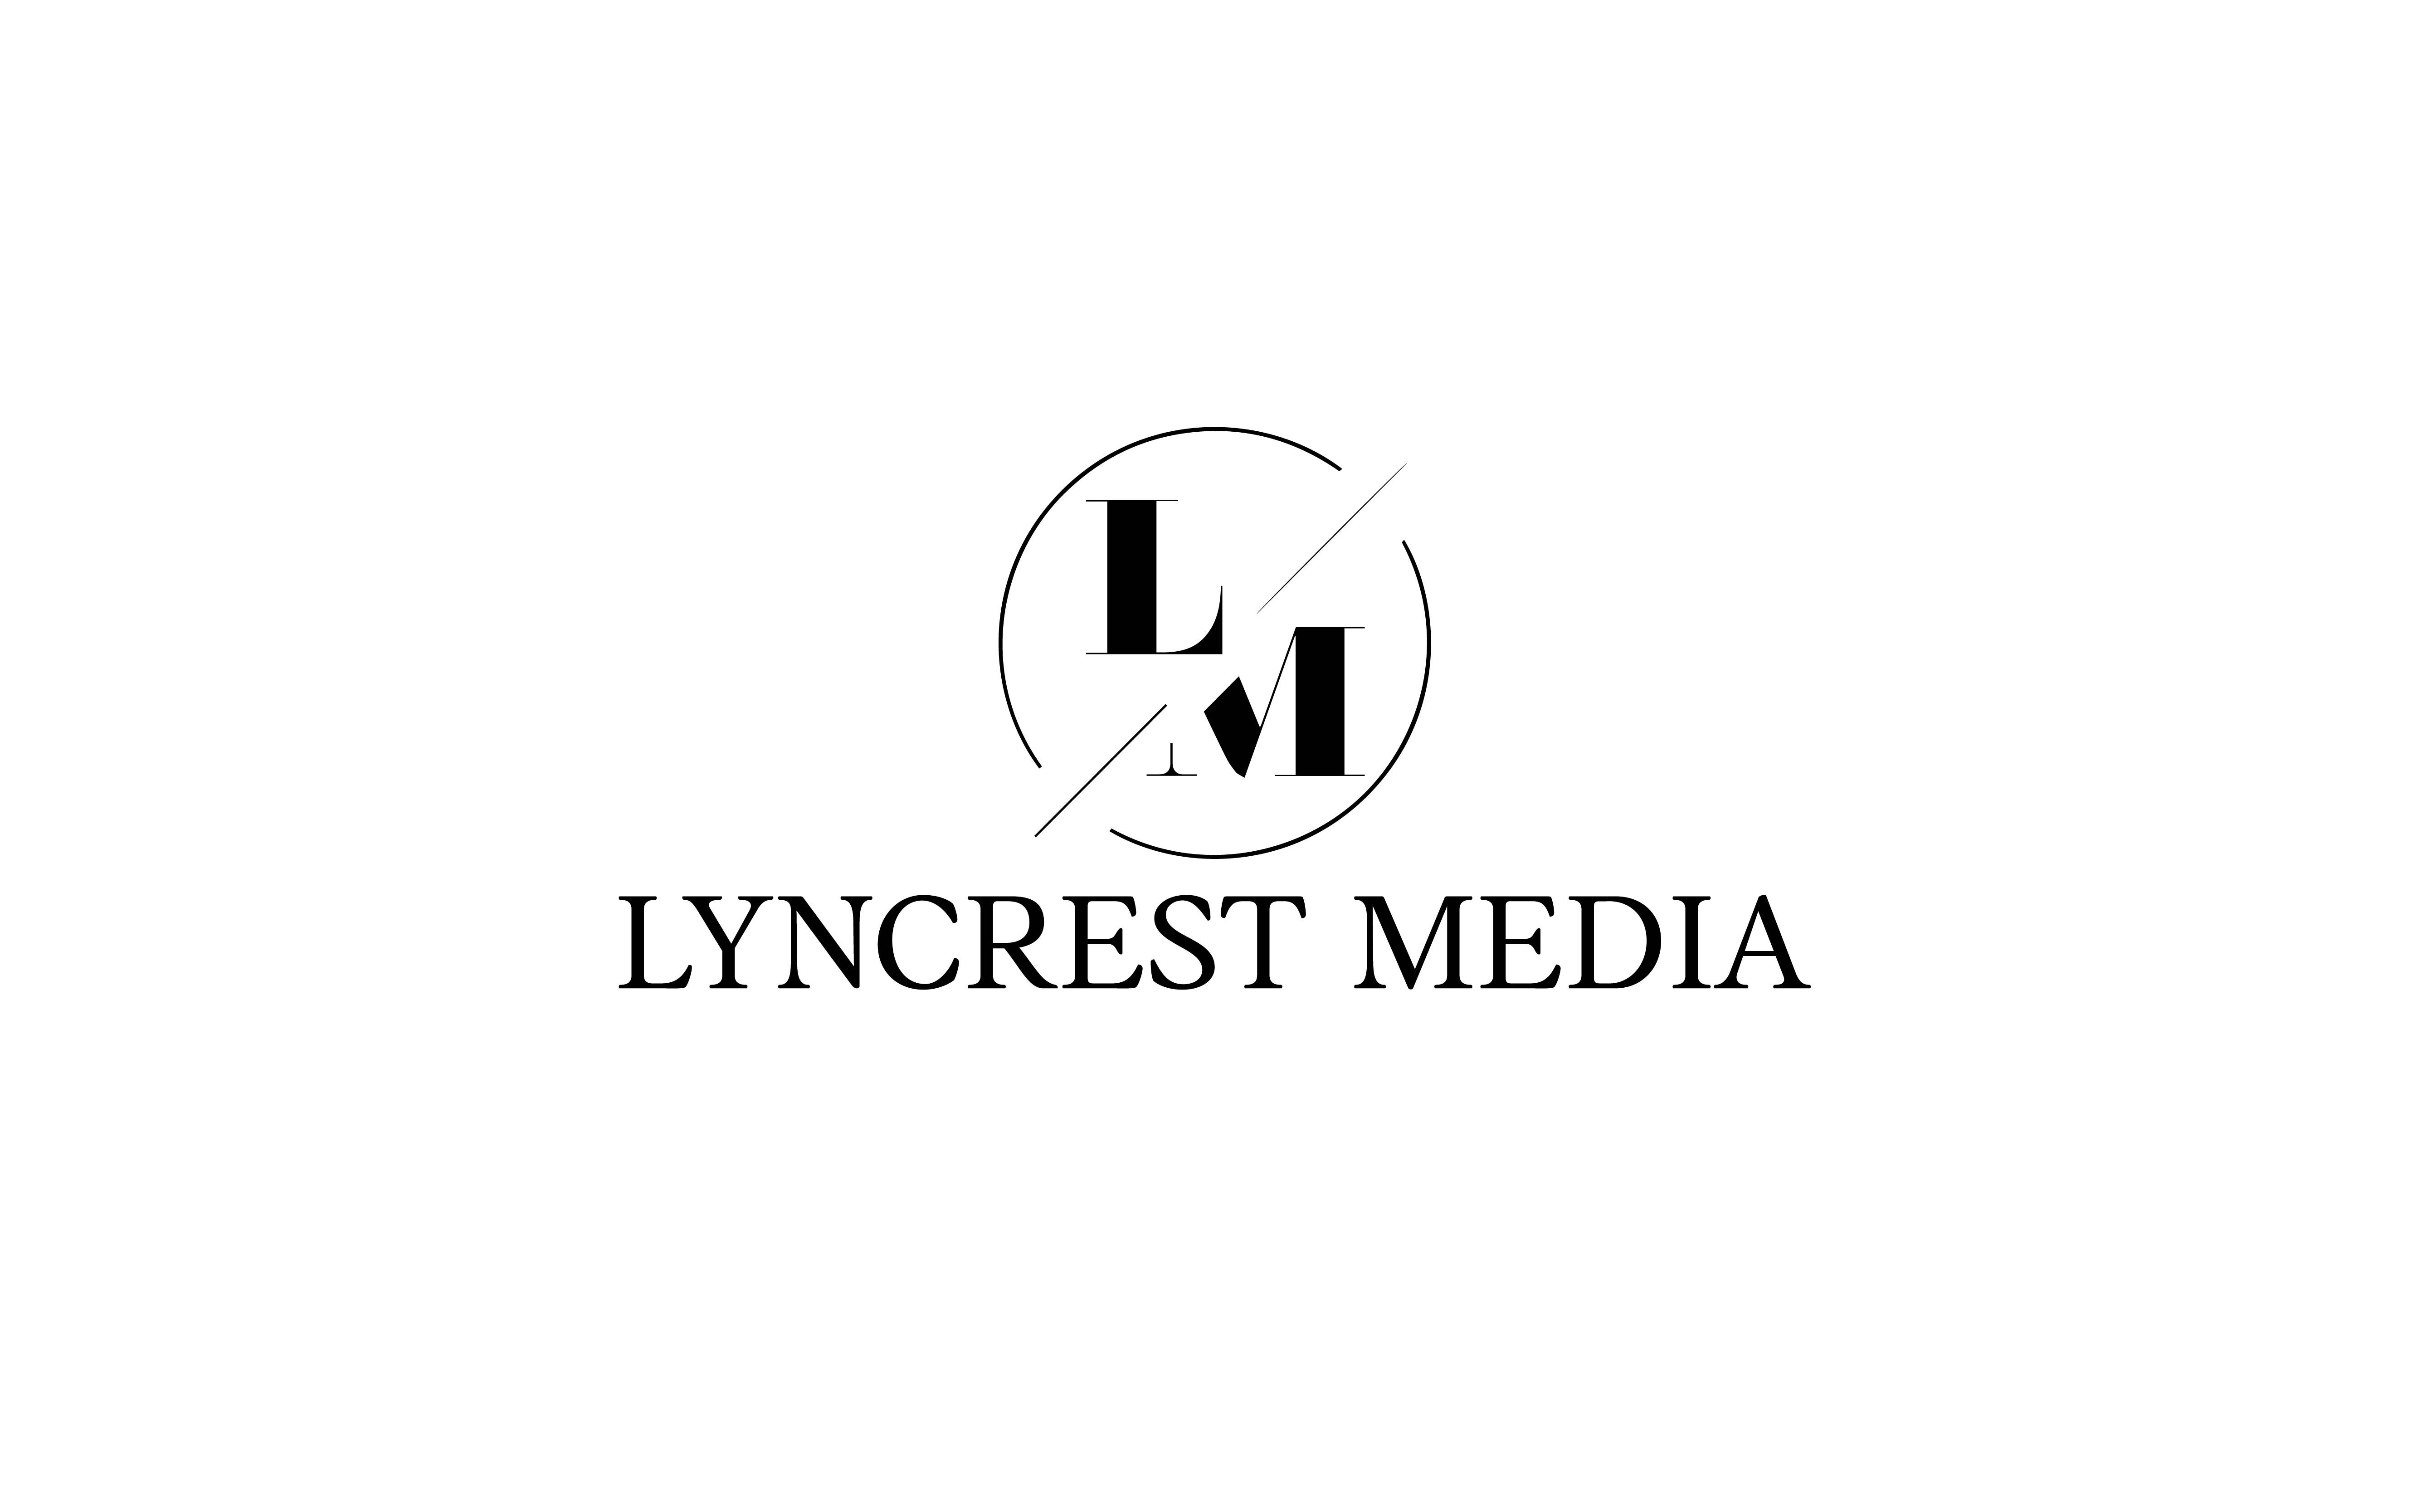 Lyncrest Media sets the pace in digital marketing with out-of-the-box lead generation solutions